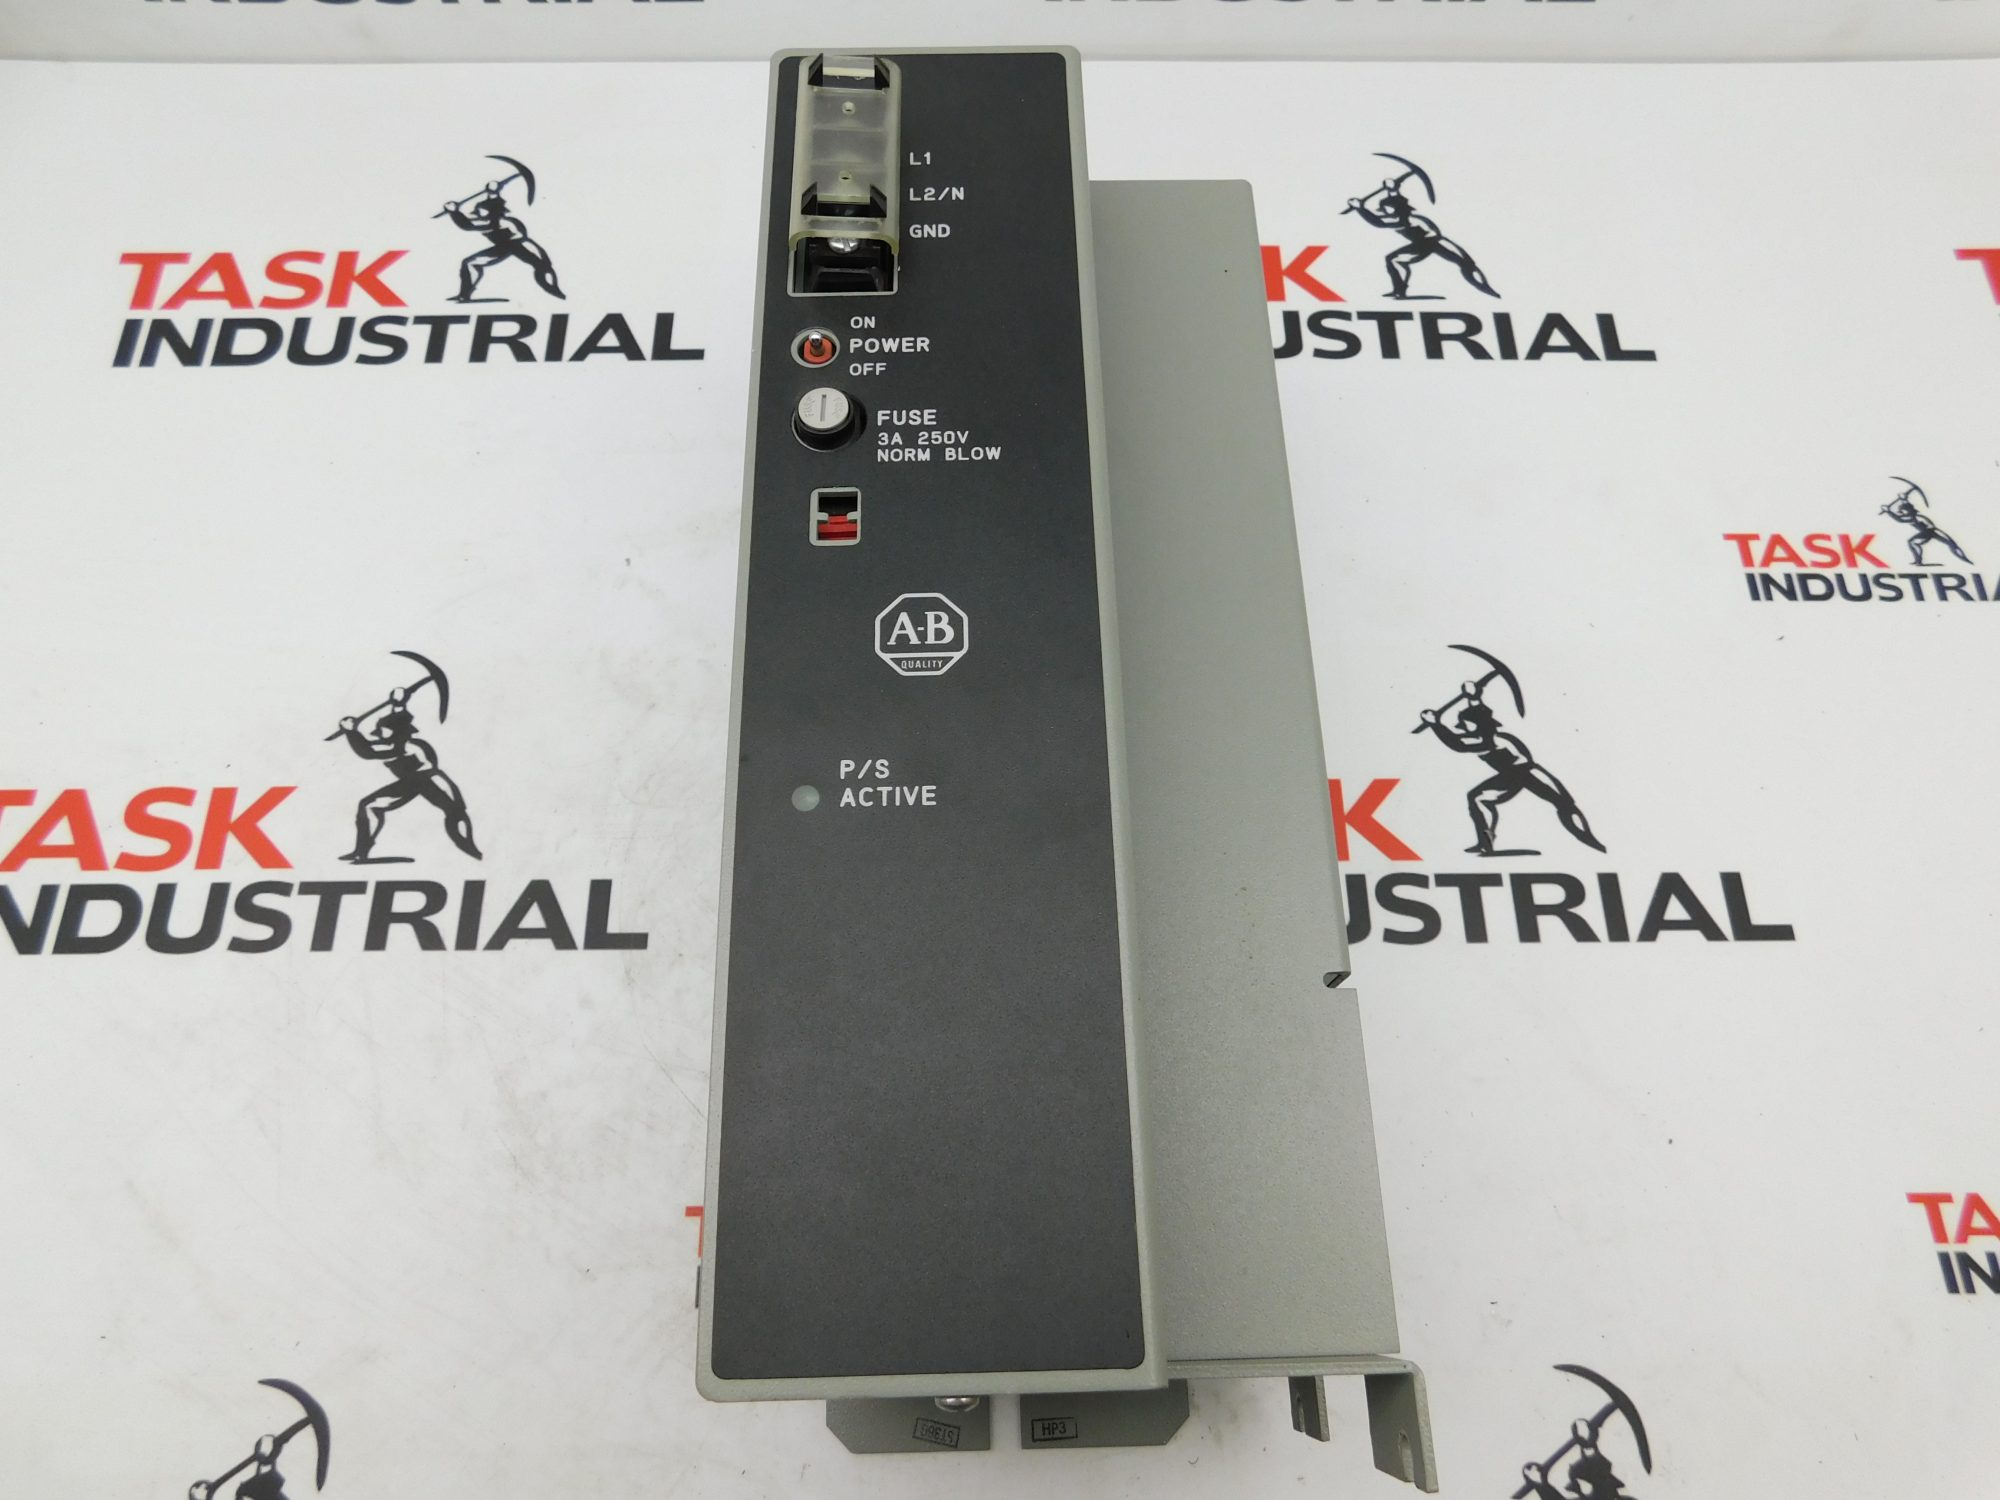 Allen-Bradley 1771-P7 B AC Power Supply Module 120/220V